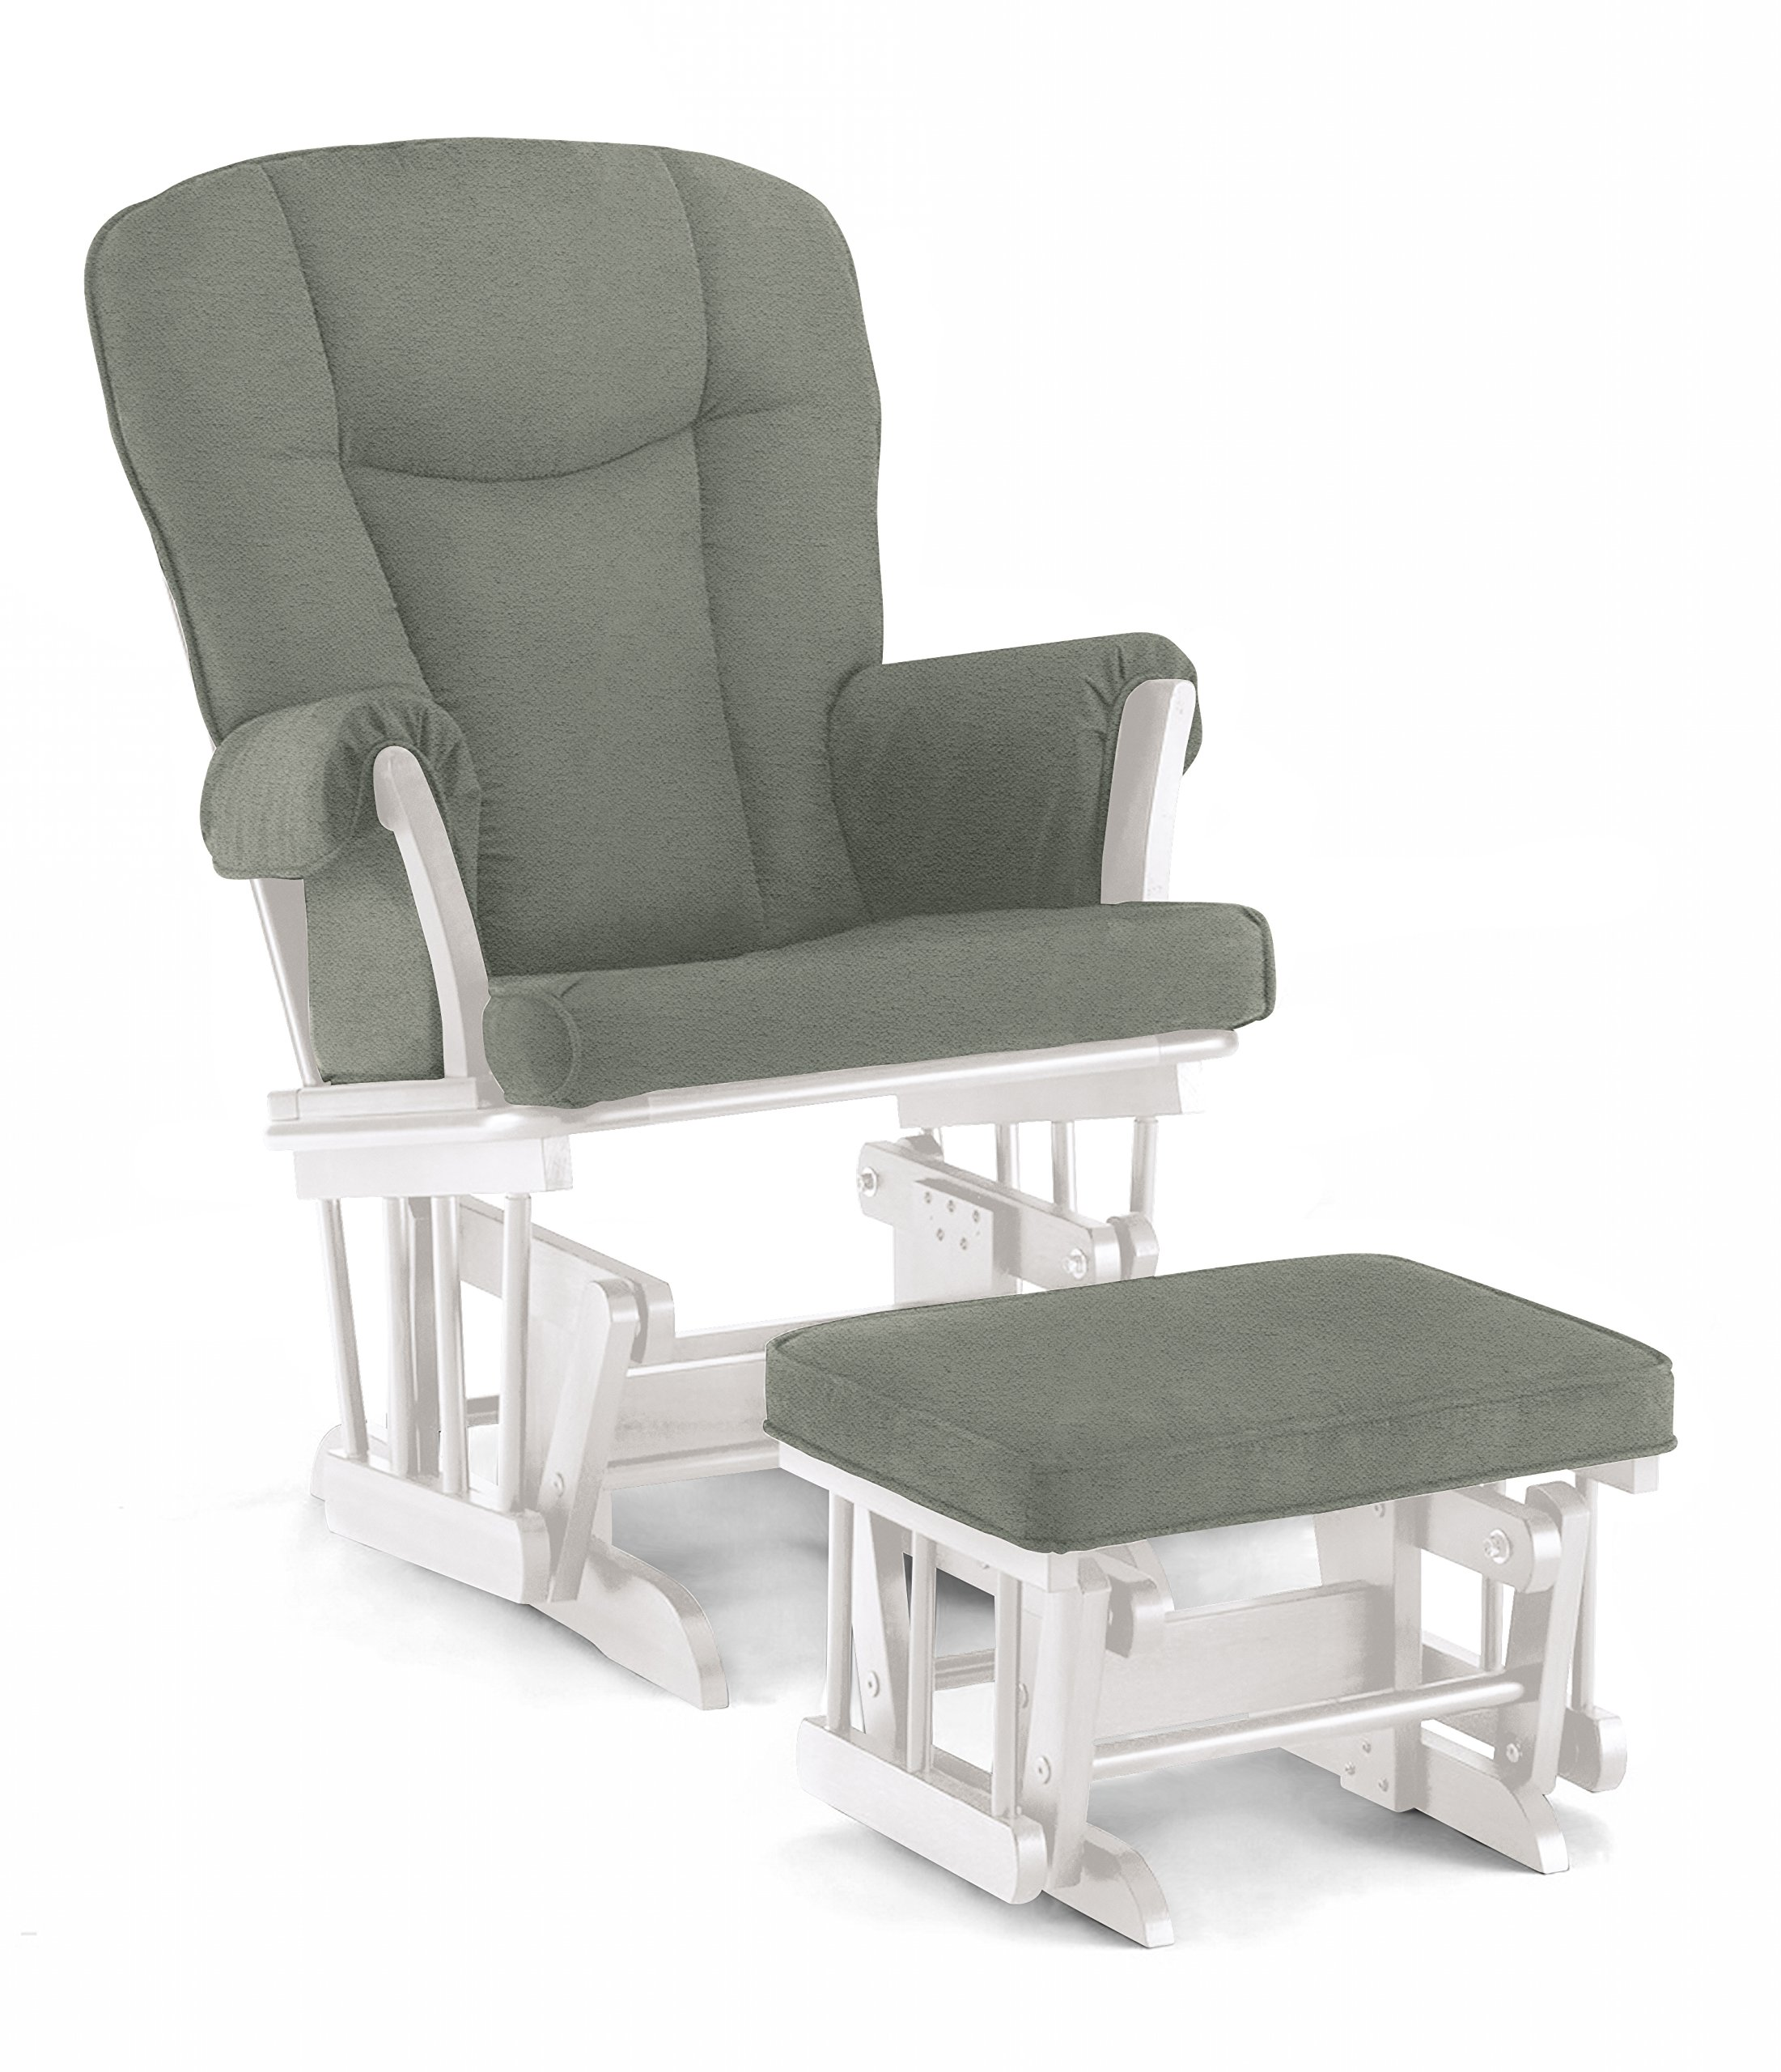 Lennox Stanton Transitional Style Glider Chair and Ottoman Combo, White with Grey by Lennox Furniture